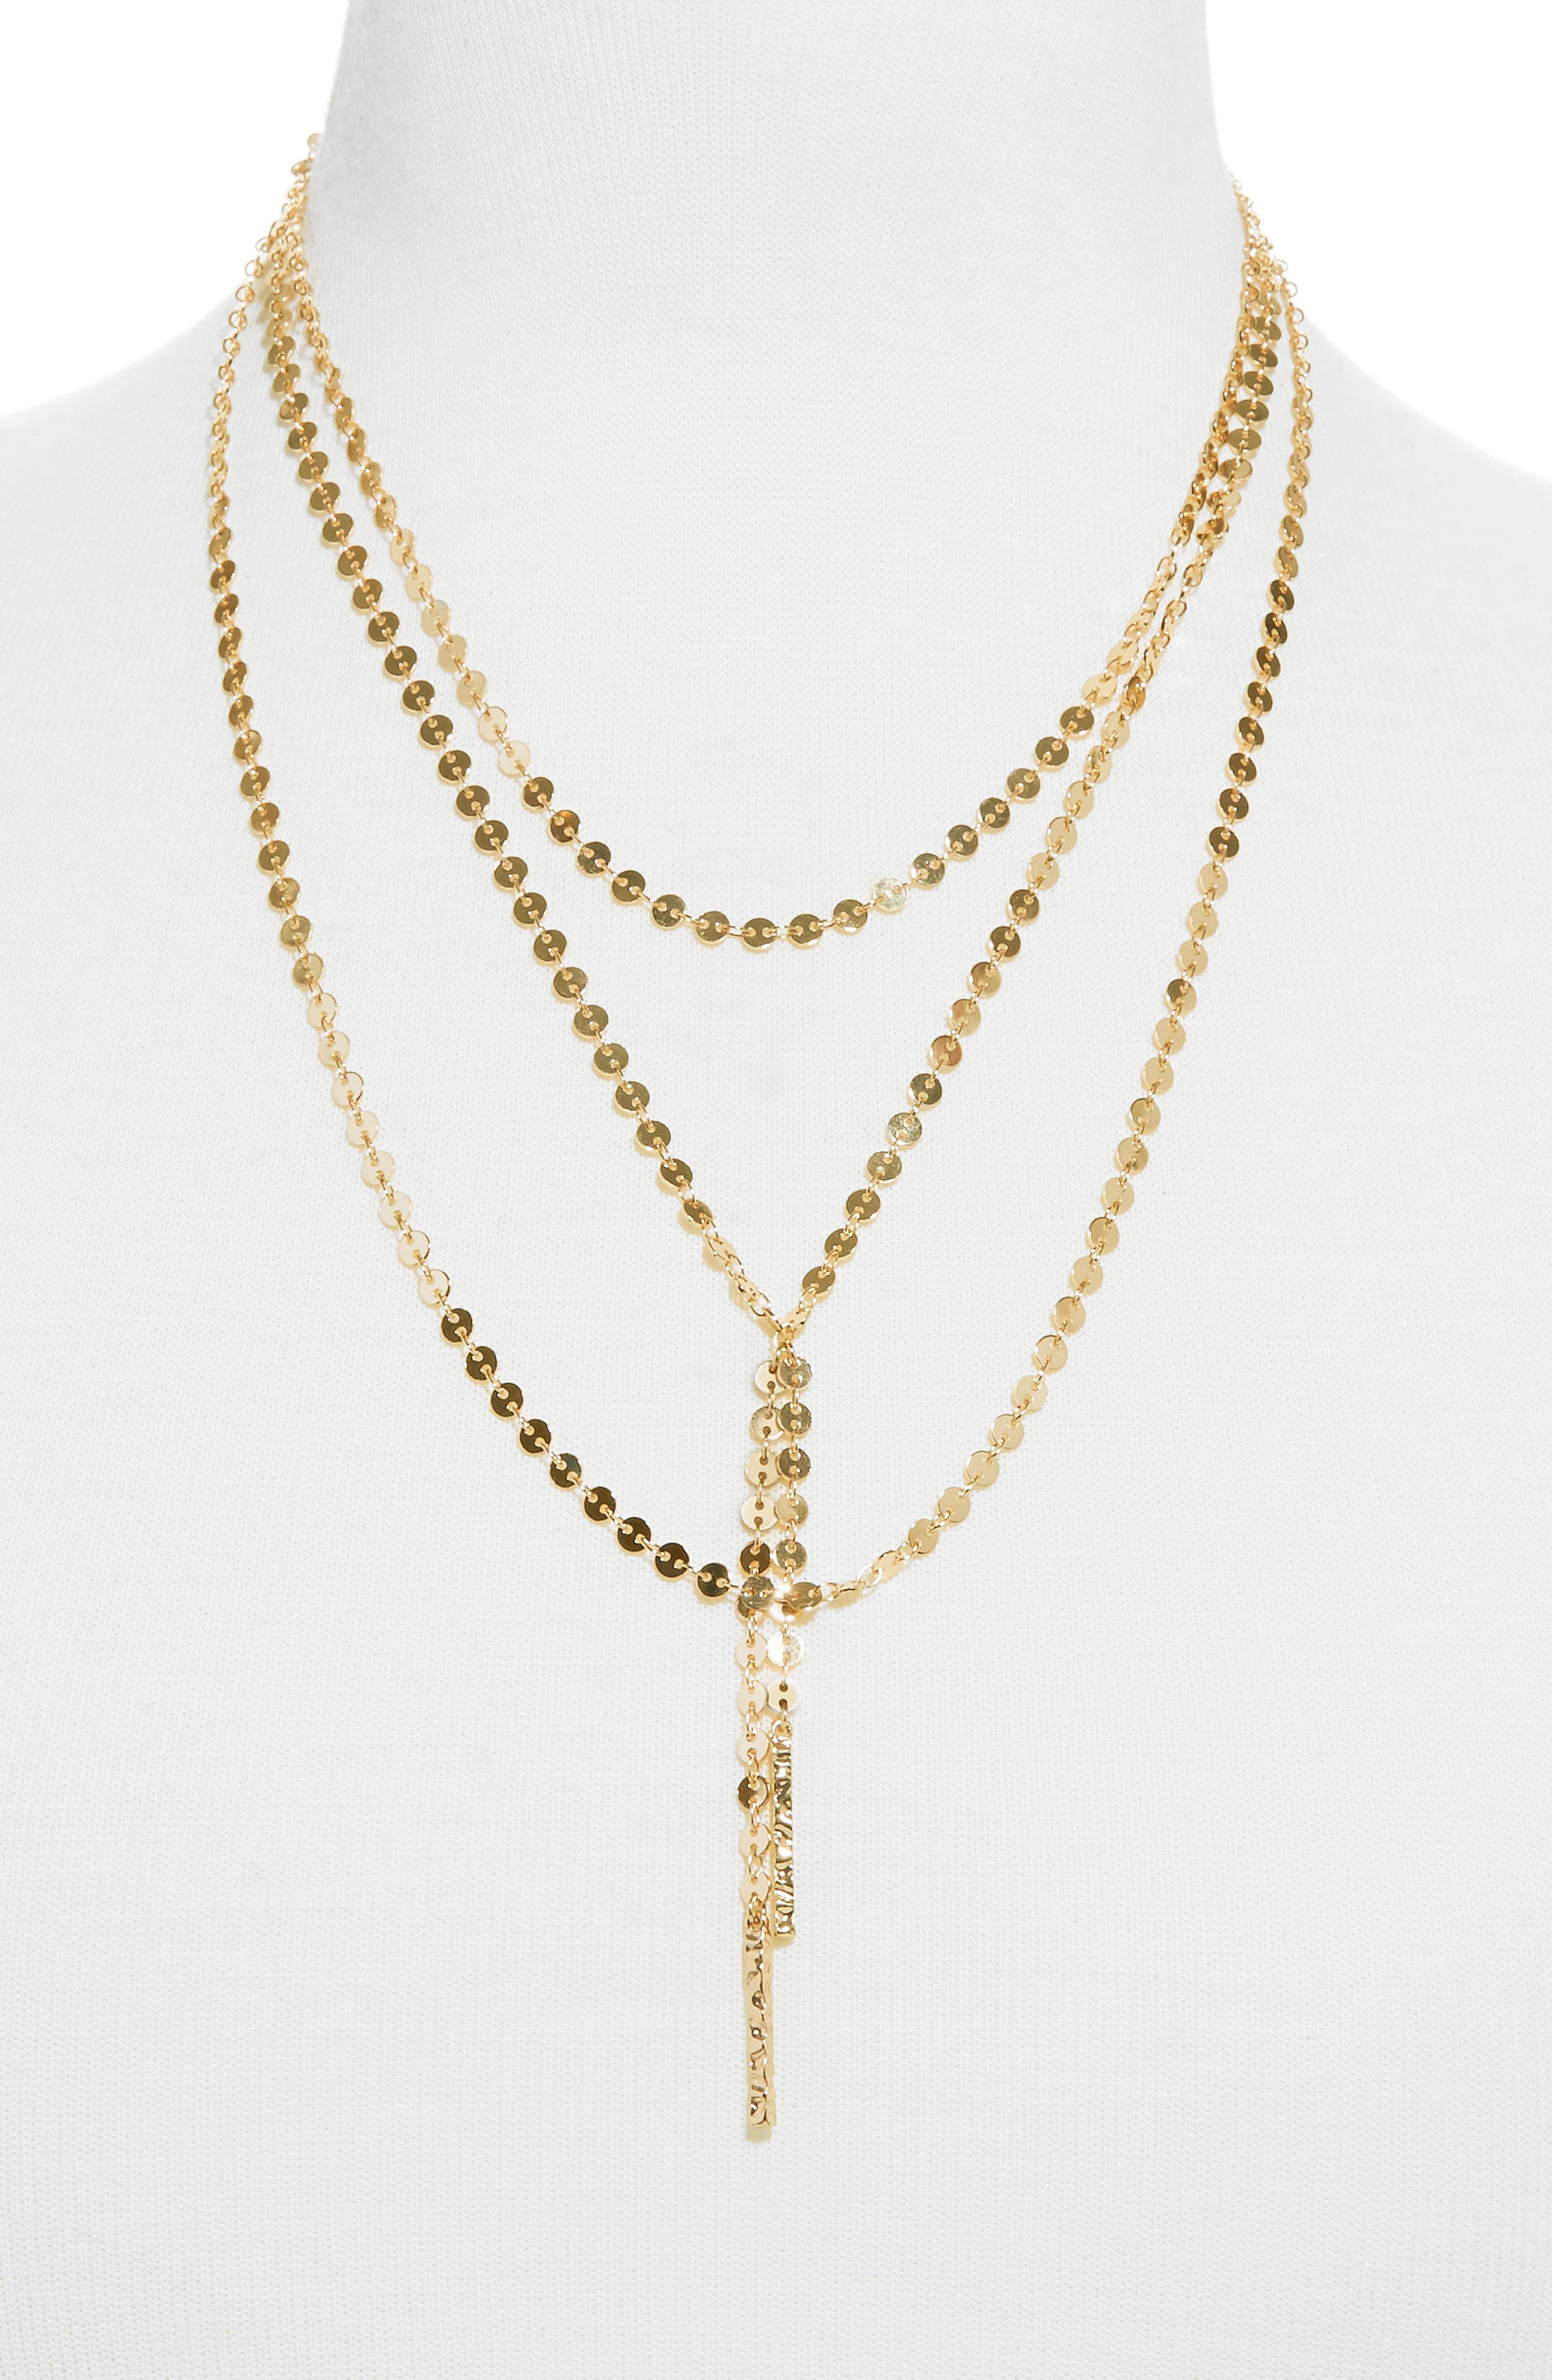 Amber Layered Chain Y-Necklace,                             Main thumbnail 1, color,                             GOLD